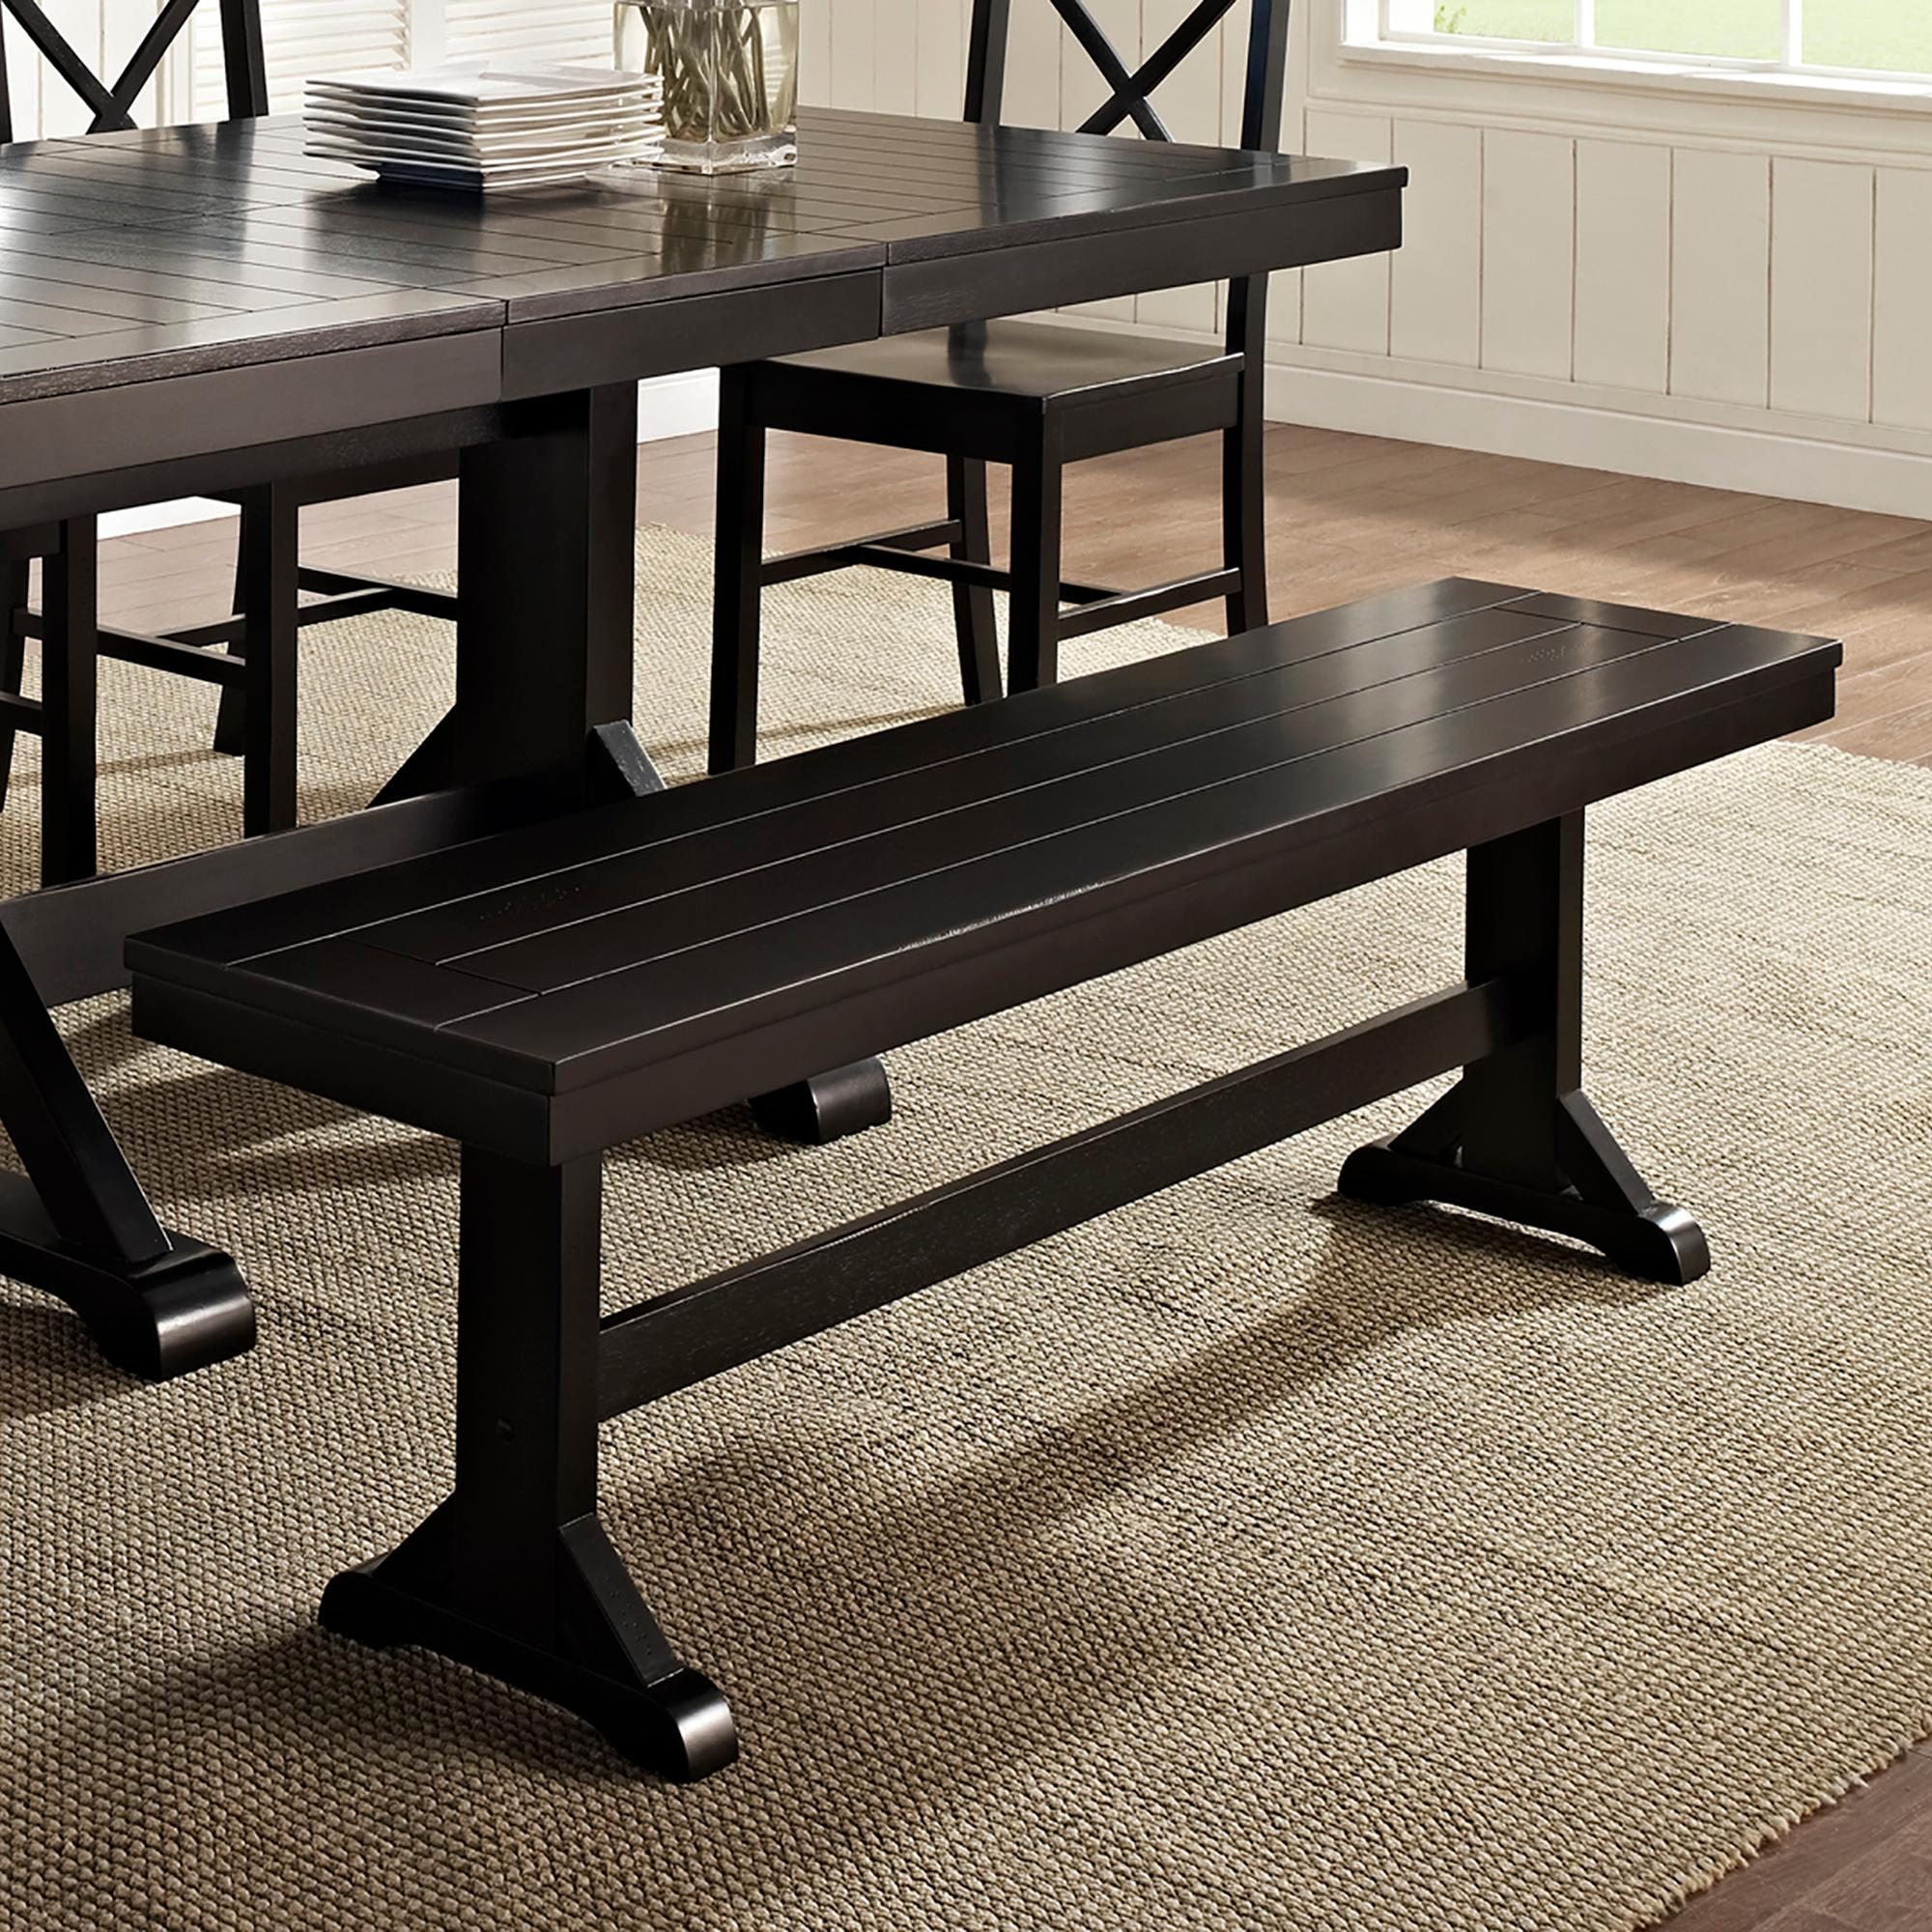 Dining Table Sets With Bench: Amazon.com: Walker Edison Furniture Company Rustic